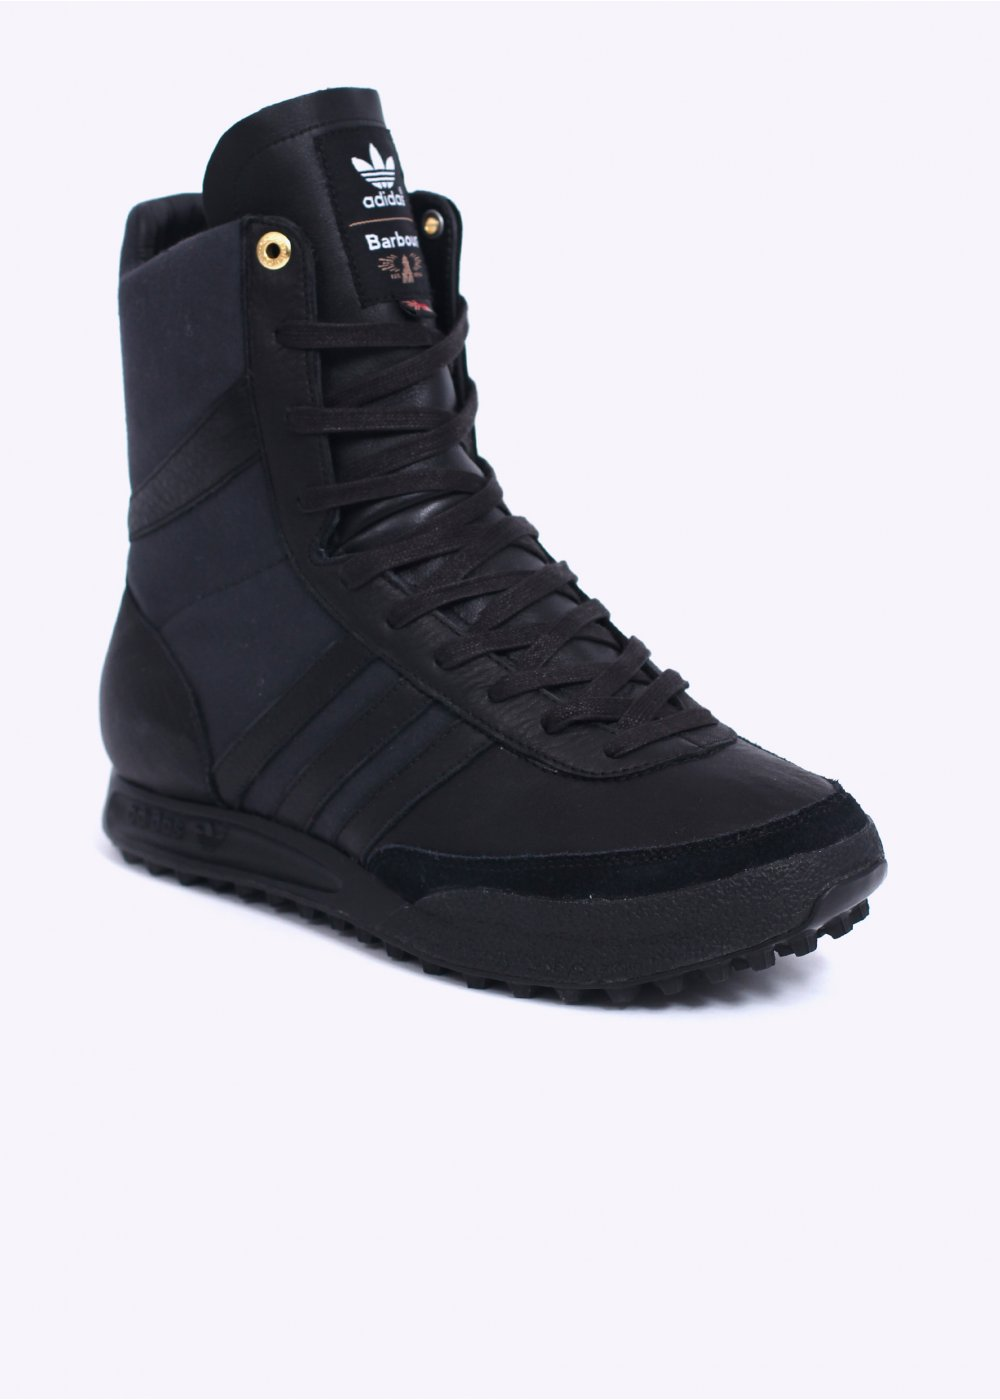 Adidas Originals X Barbour GSG9 Black